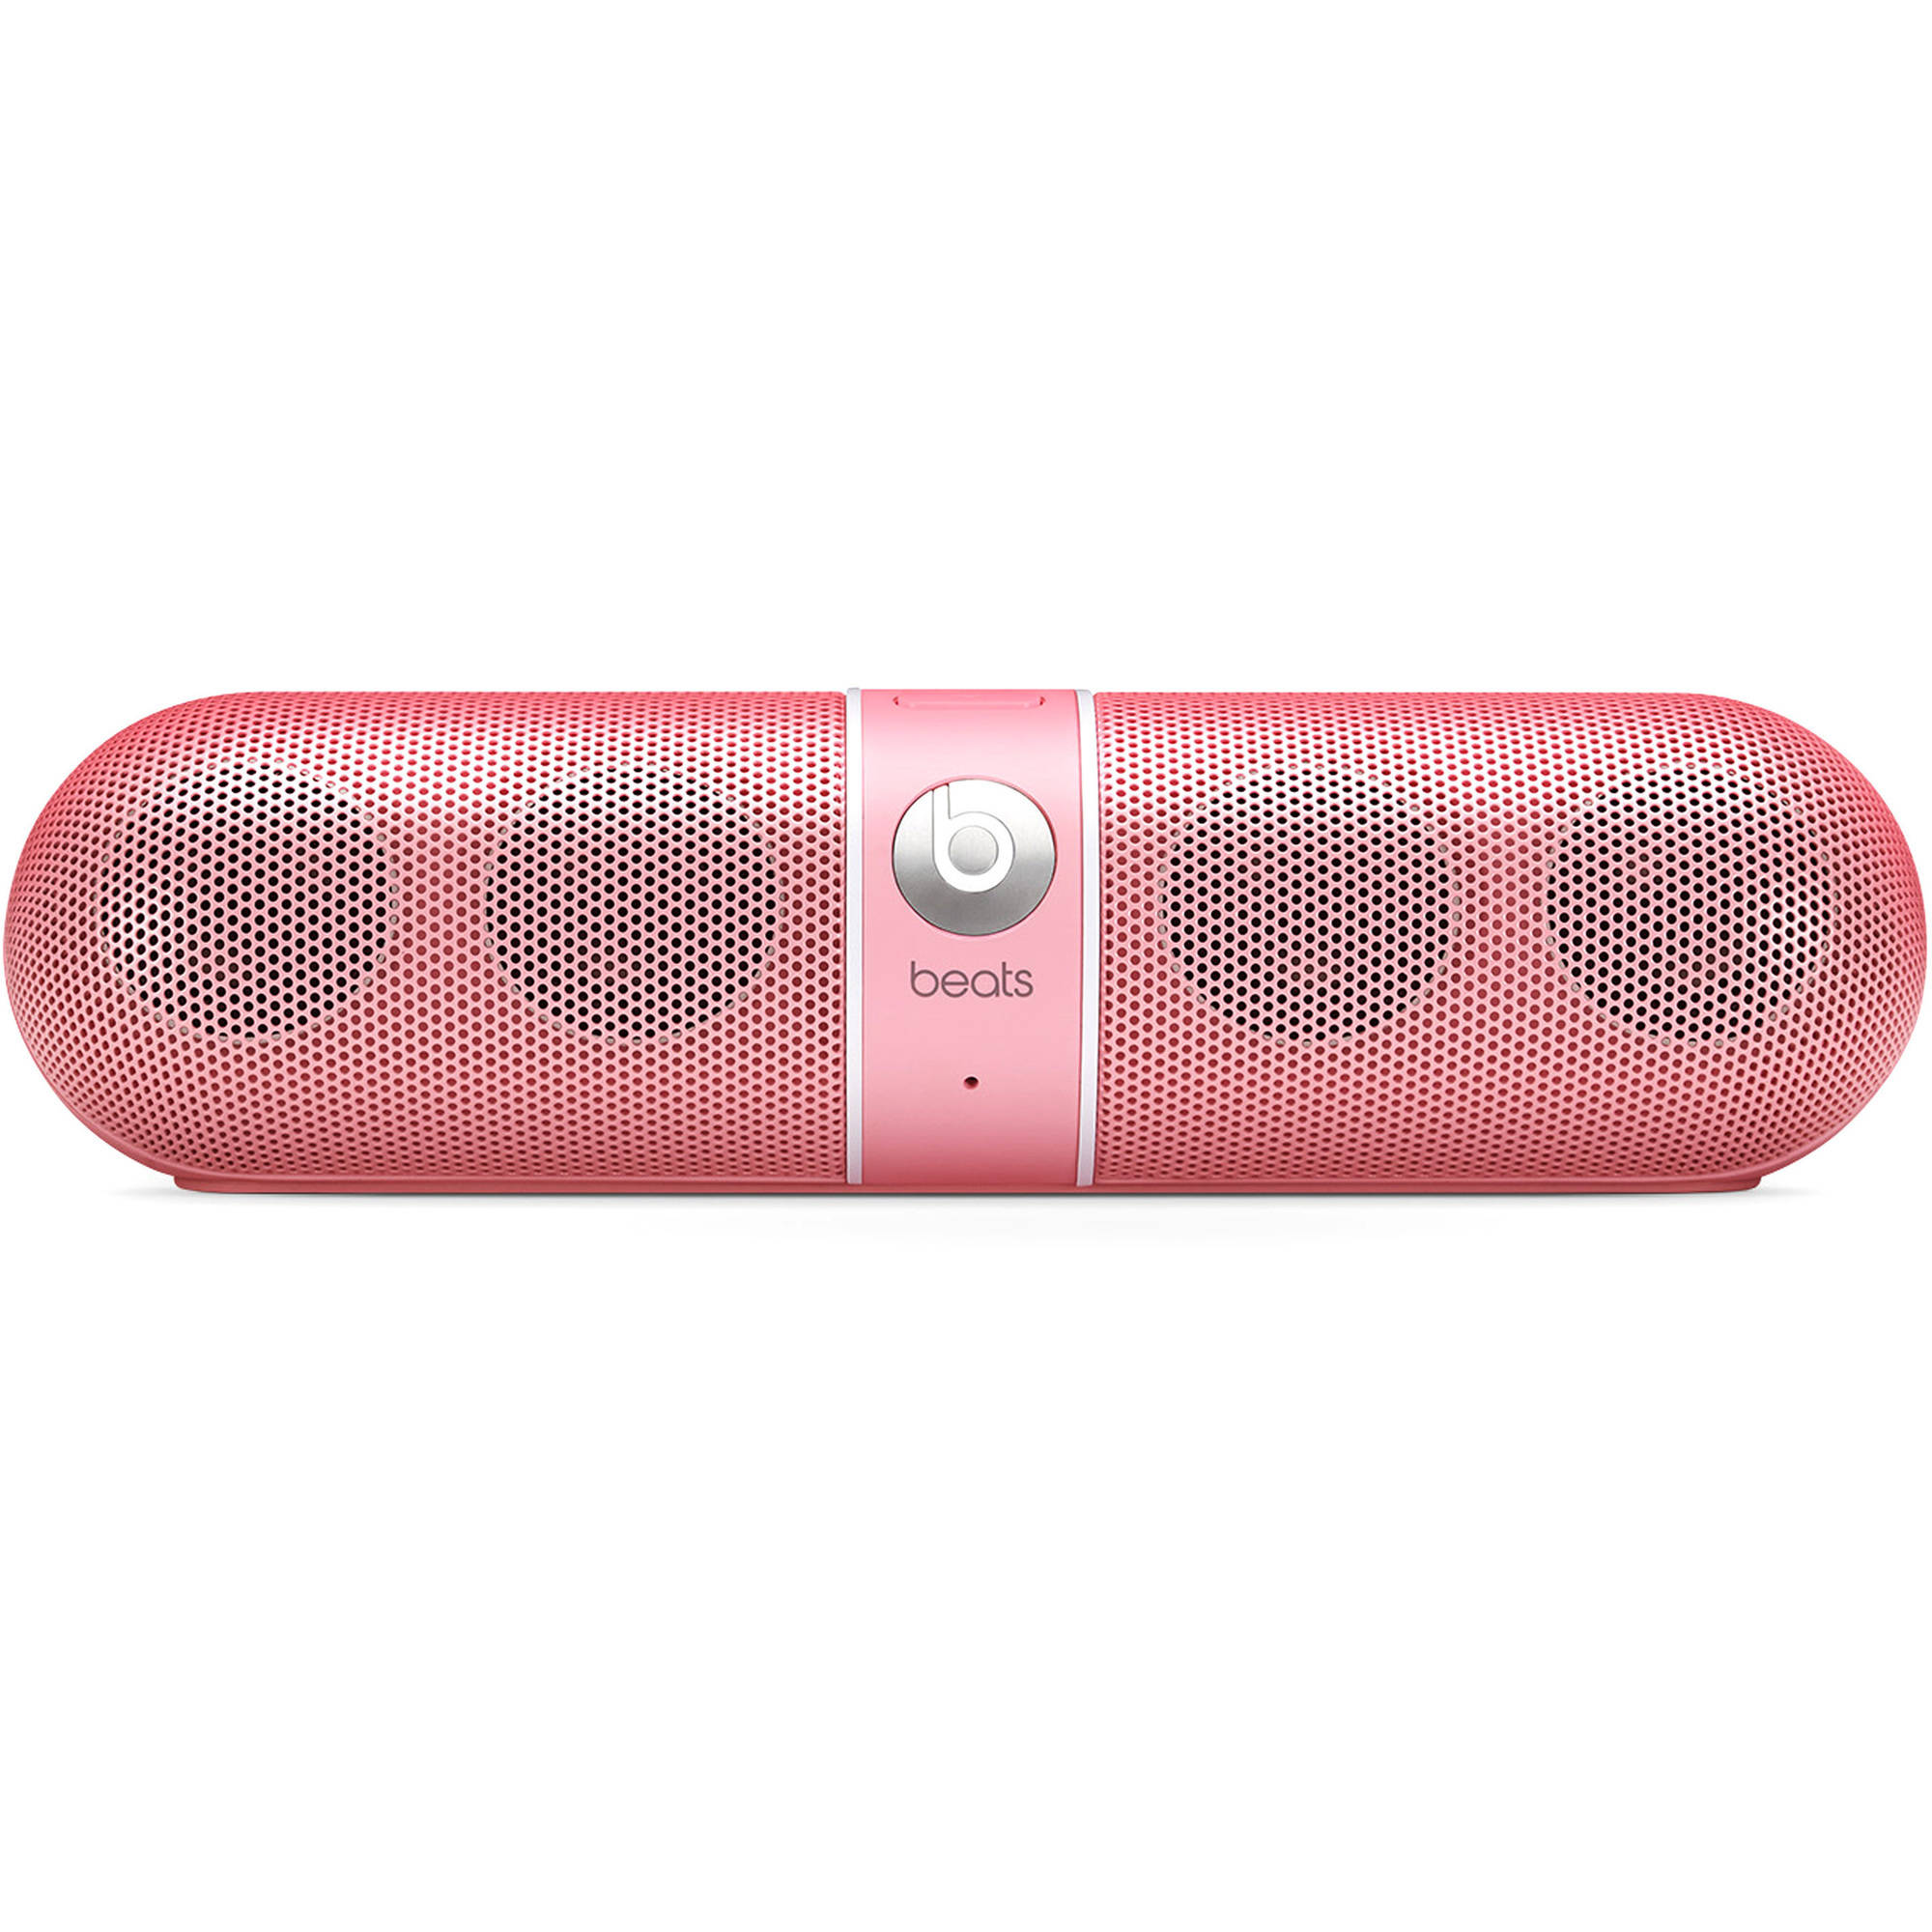 Beats by Dr. Dre Pill 2.0 Speaker, Pink - Walmart.com